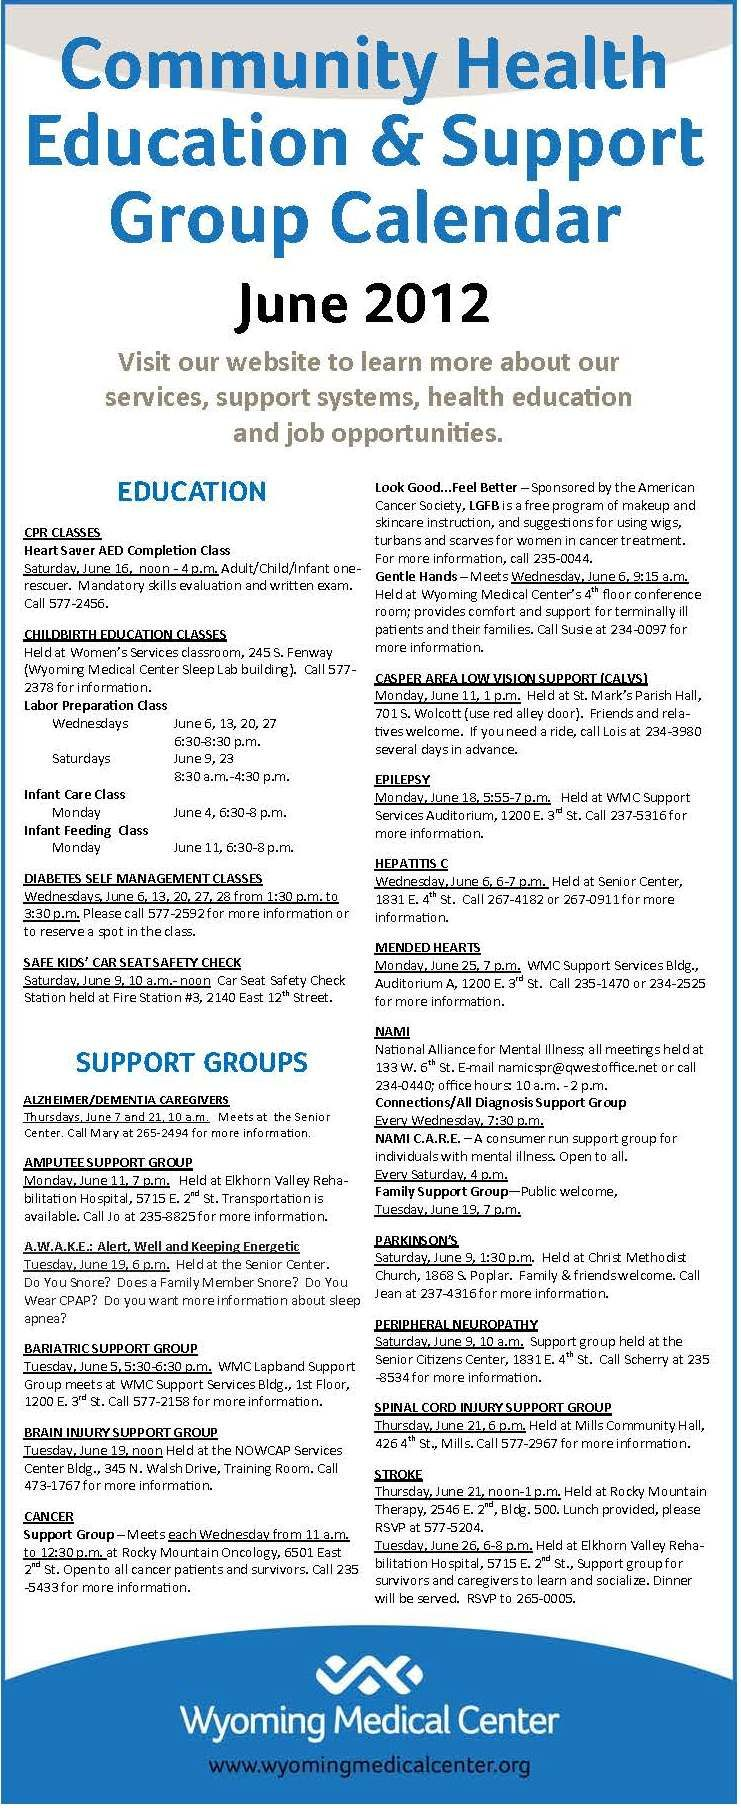 Monthly Education and Support Group Calendar for June 2012